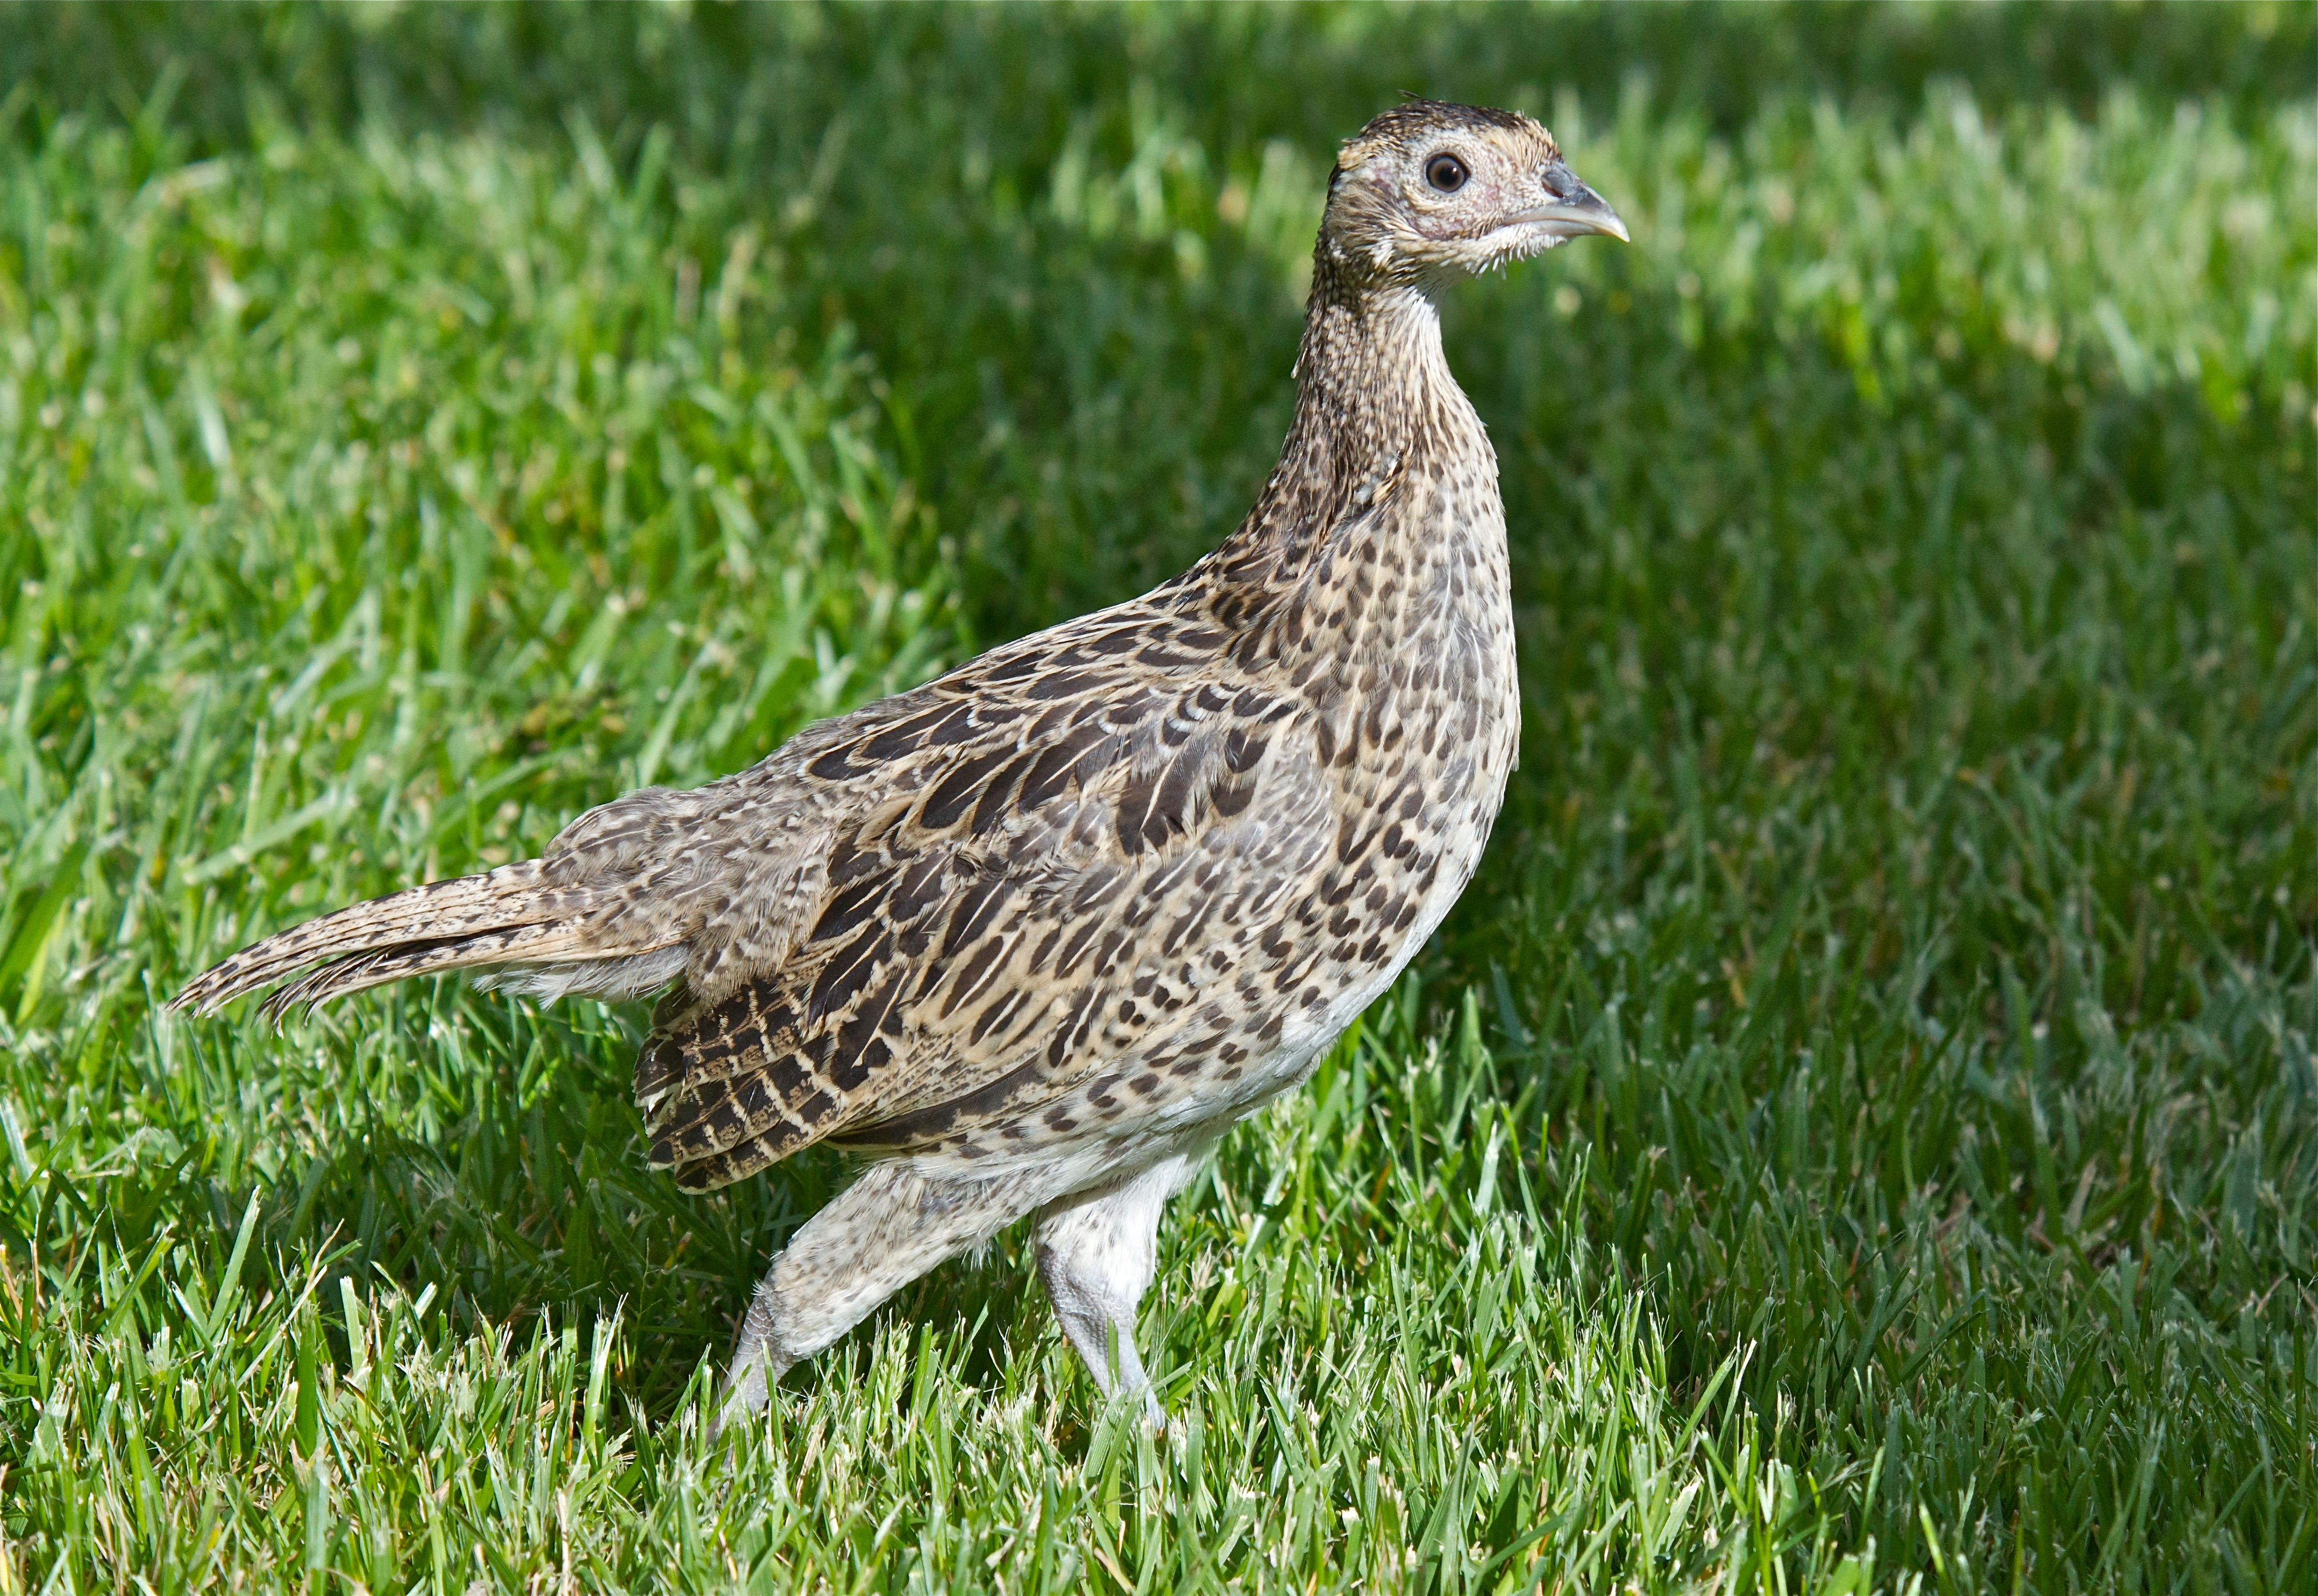 Young Ring-Necked Pheasant 5 ½ Weeks